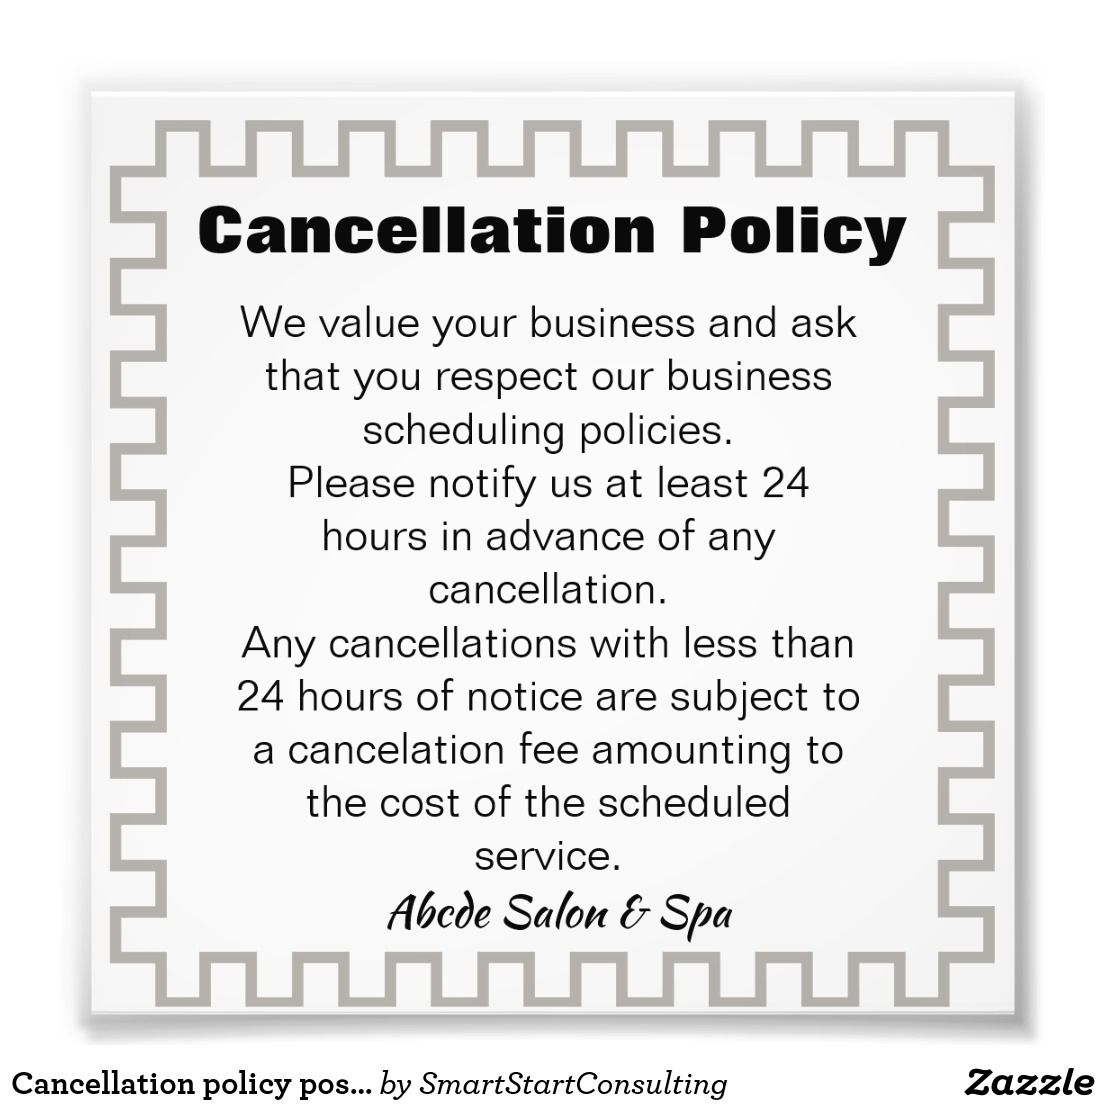 Cancellation Policy Poster Ad Reduce No Show Or Last Minute